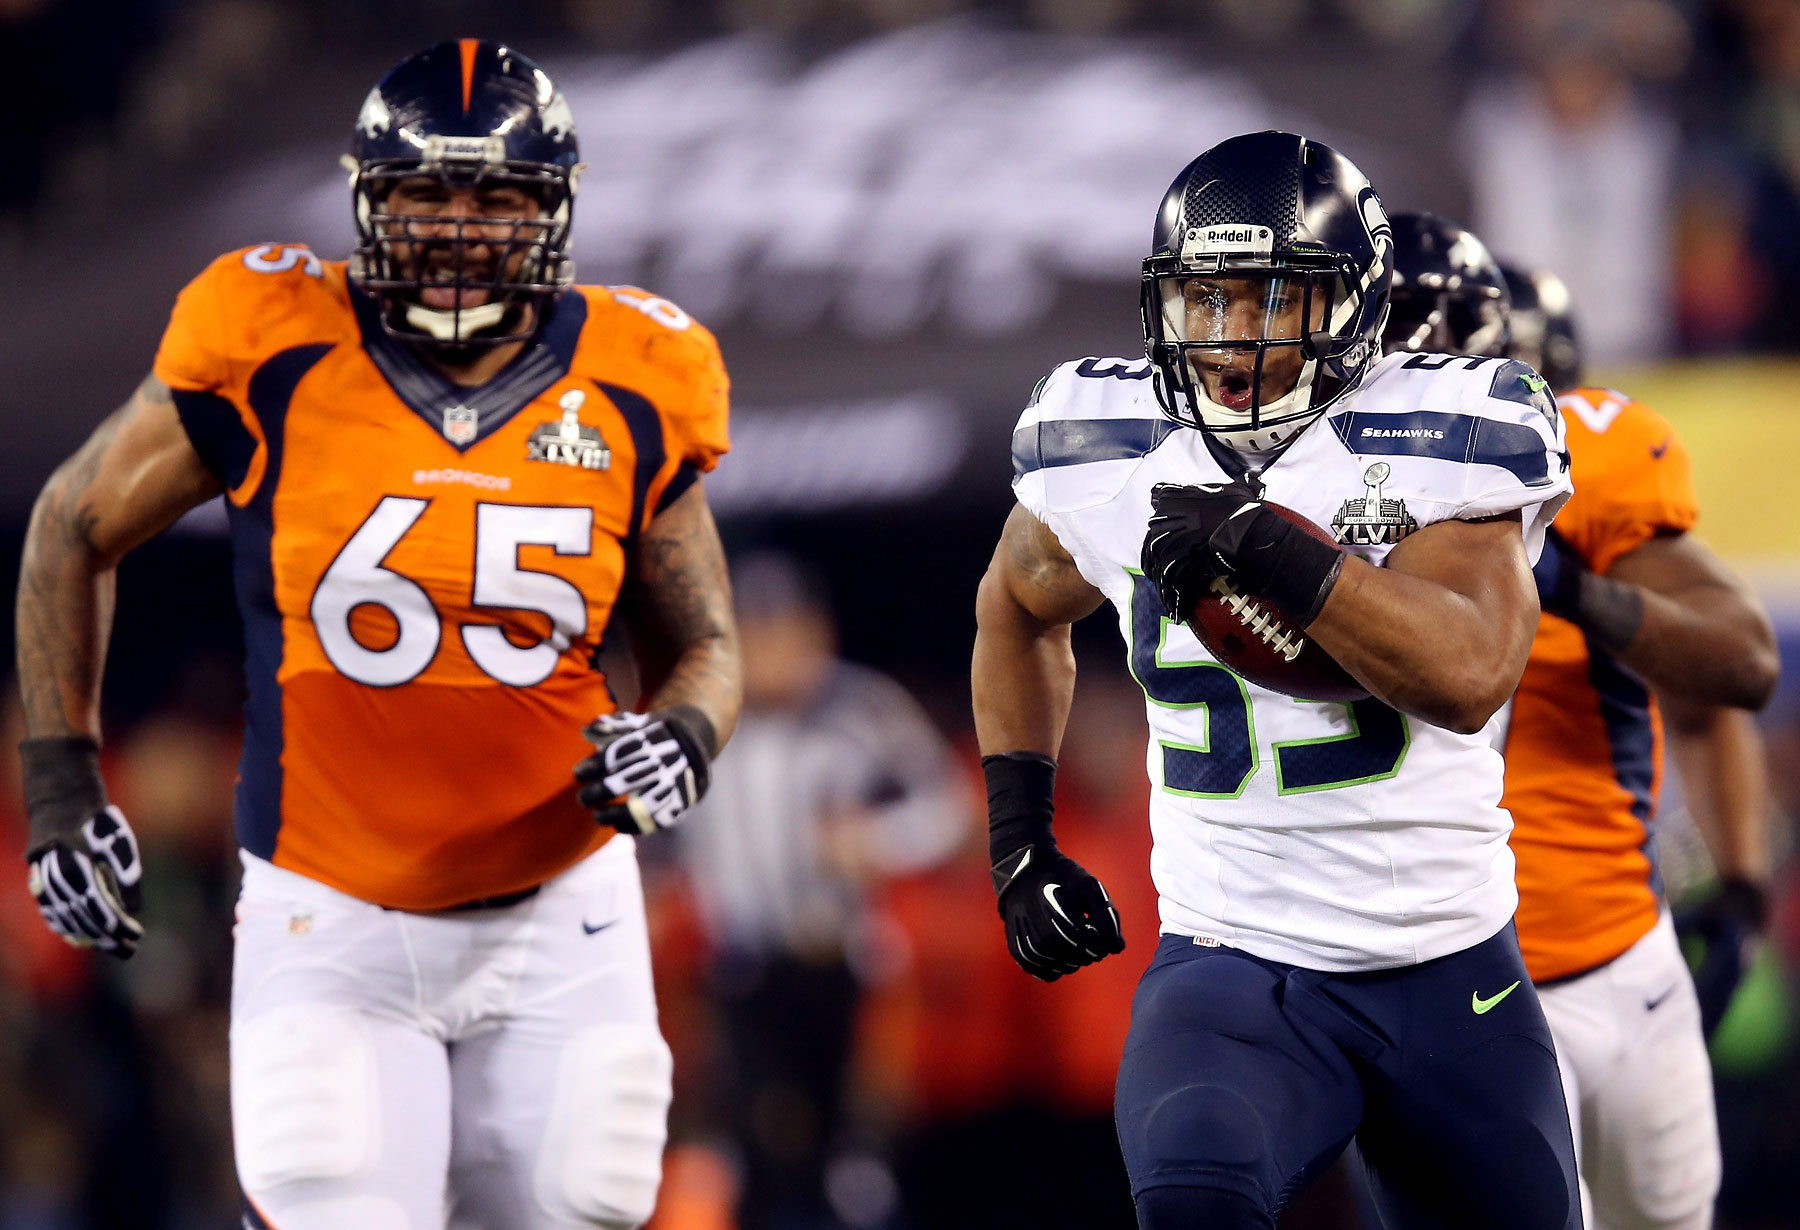 Outside linebacker Malcolm Smith of the Seattle Seahawks runs 69-yards for a touchdown against guard Louis Vasquez of the Denver Broncos after intercepting a pass intended for running back Knowshon Moreno of the Denver Broncos in the second quarter.